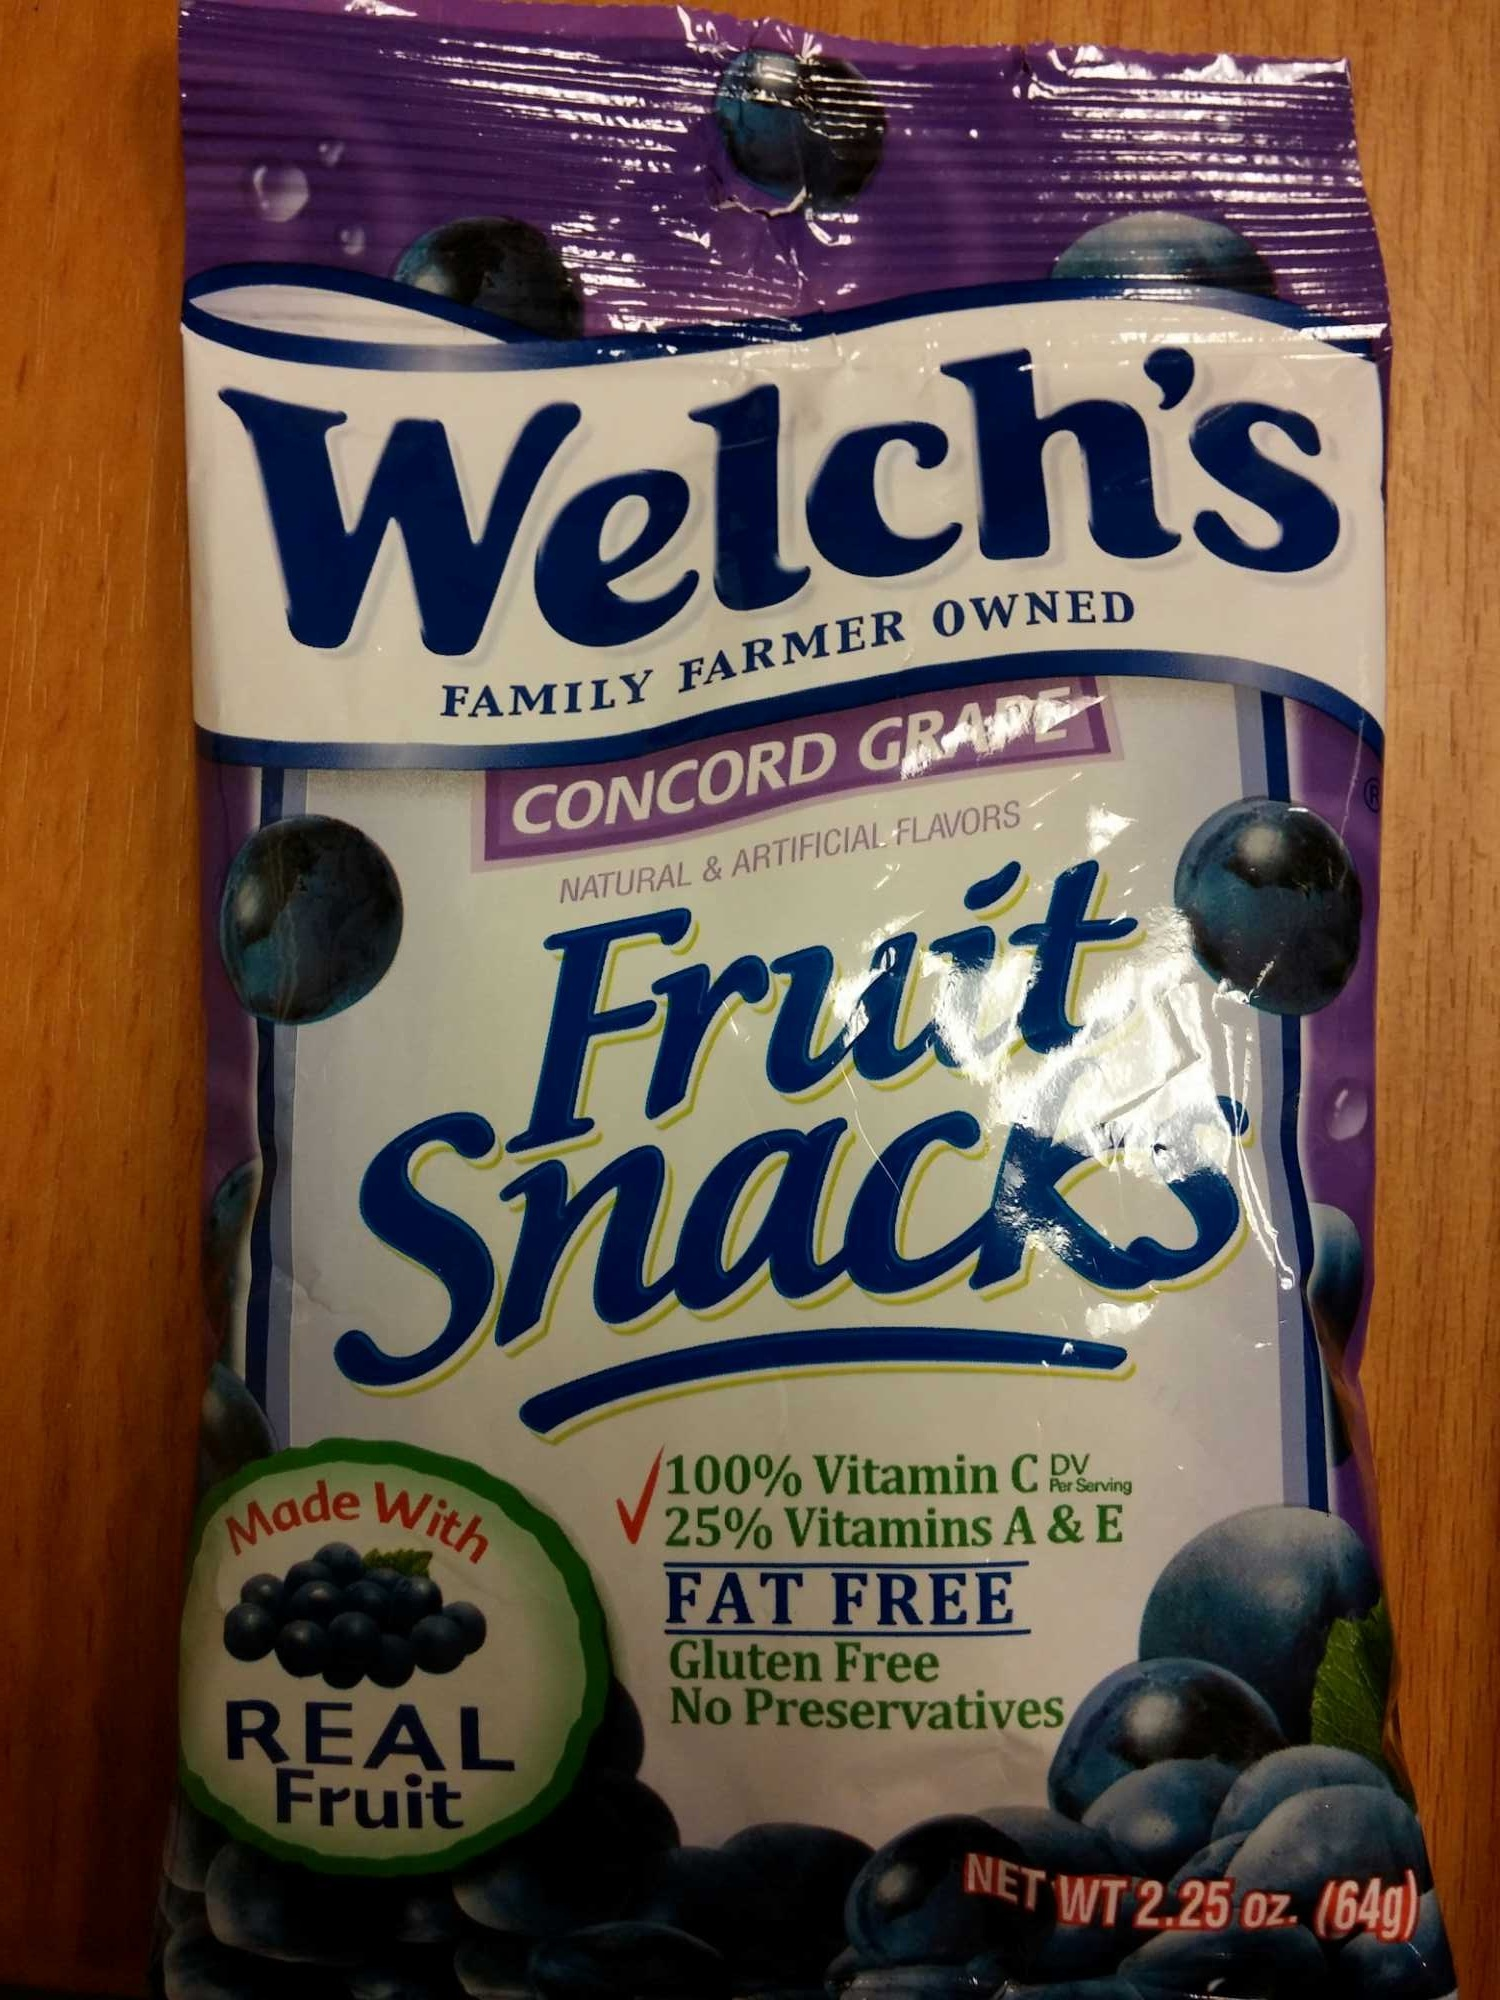 concord grape fruit snacks - welch's - 2.25oz